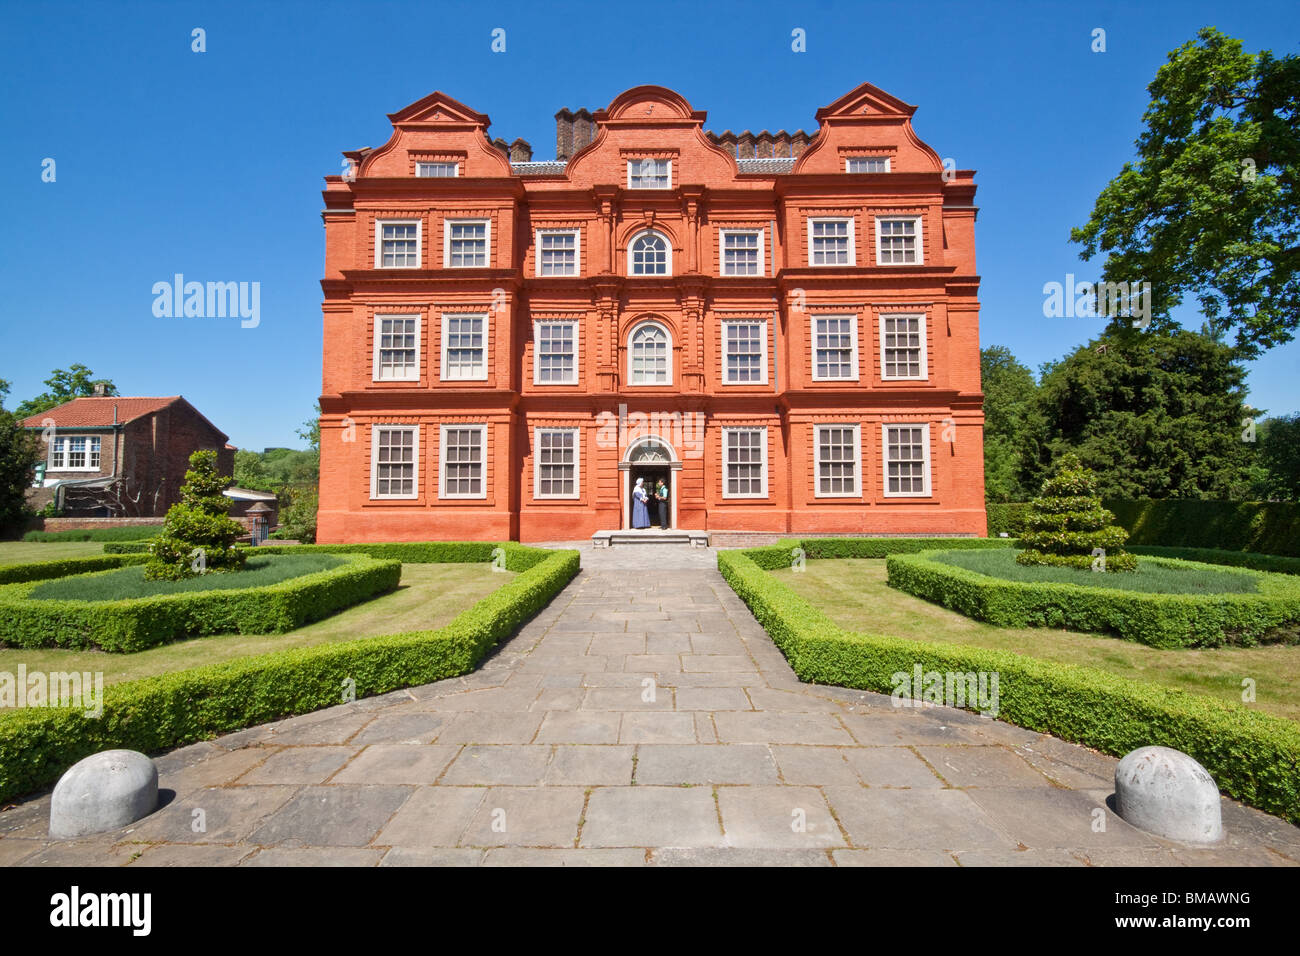 Kew Palace Royal Botanic Gardens Richmond Surrey - Stock Image